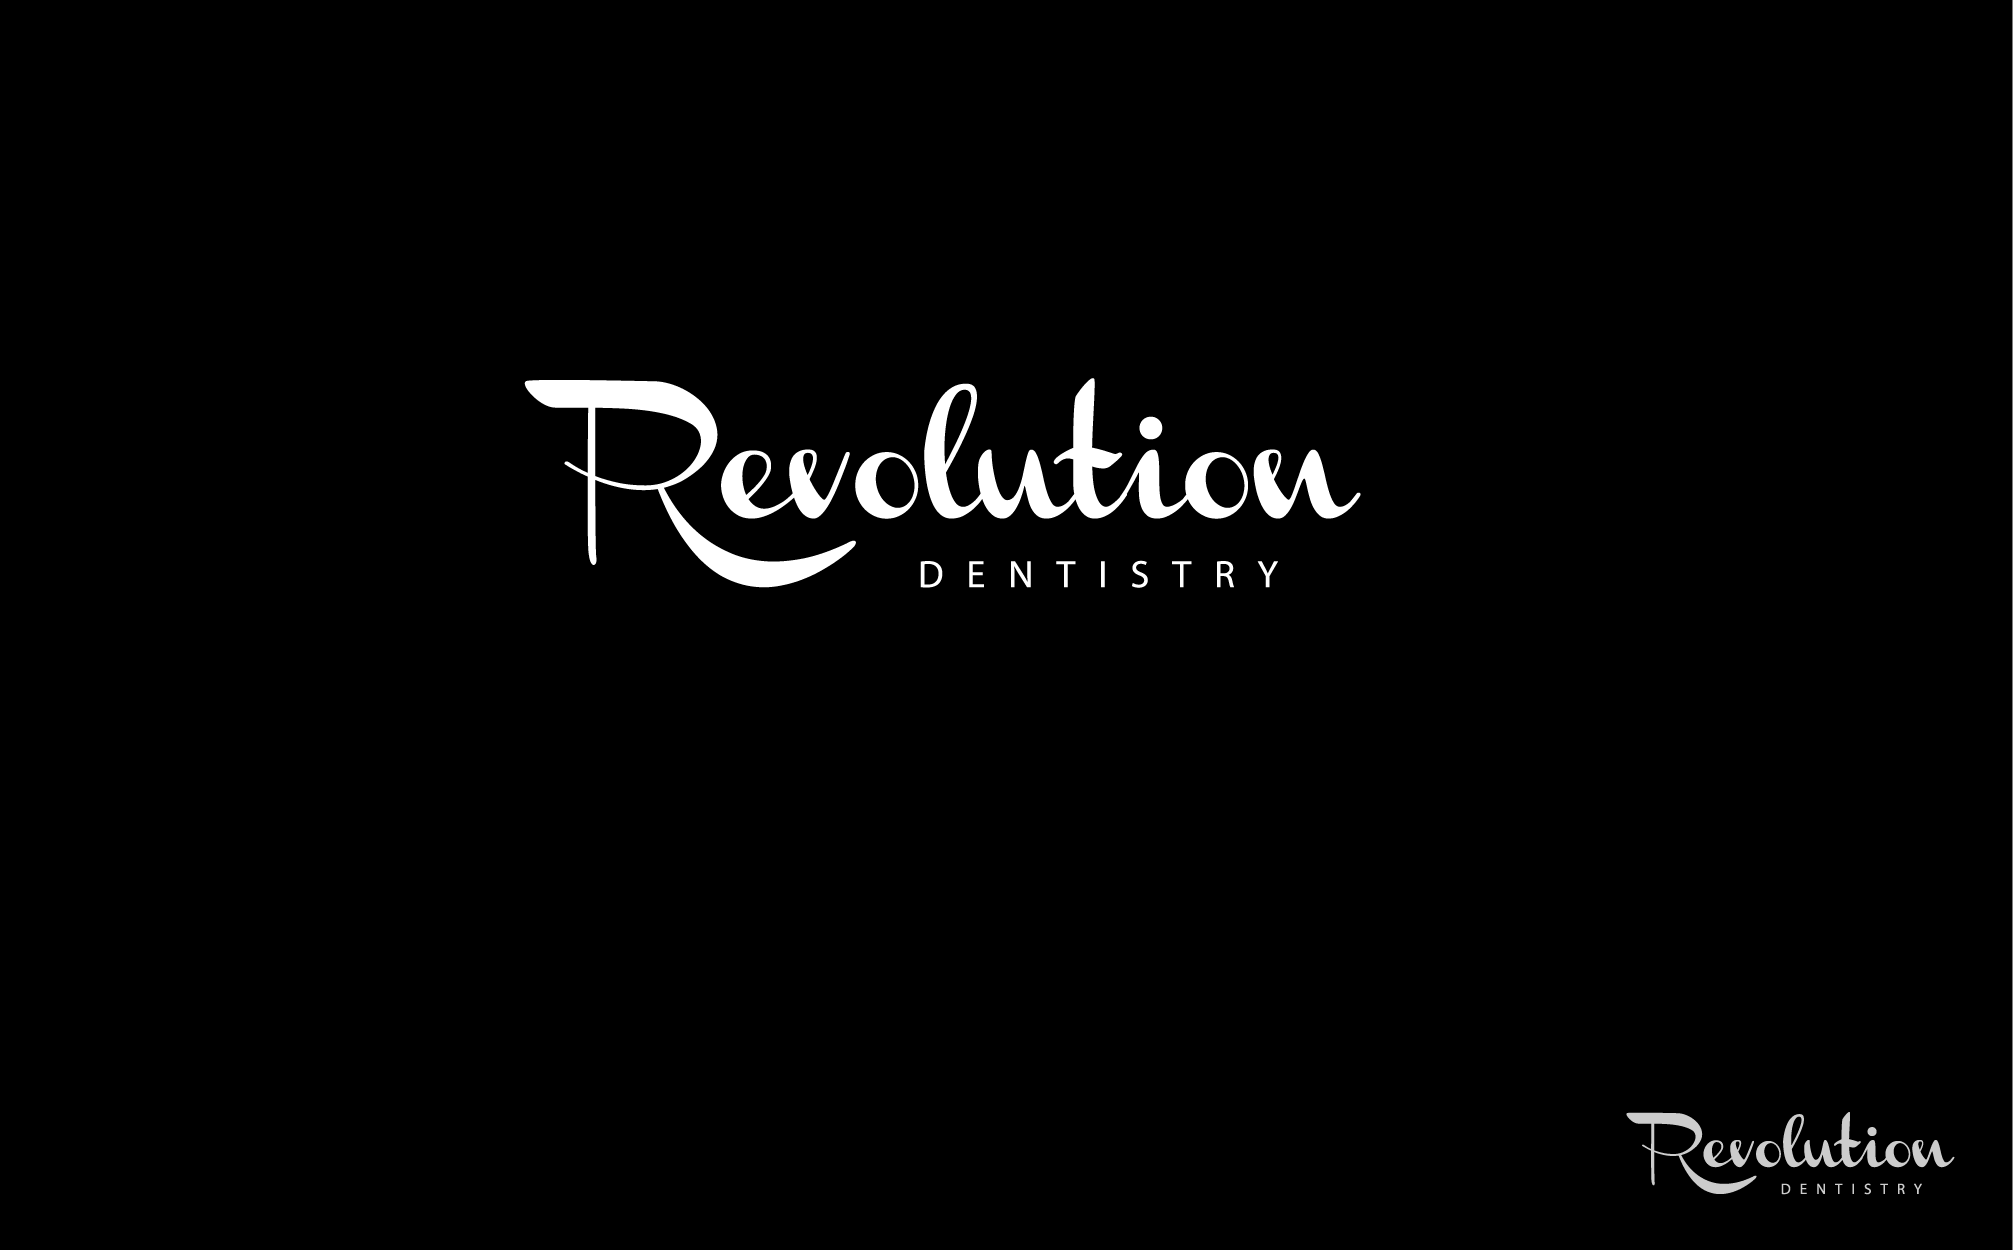 Logo Design by Abhishek Saini - Entry No. 181 in the Logo Design Contest Artistic Logo Design for Revolution Dentistry.